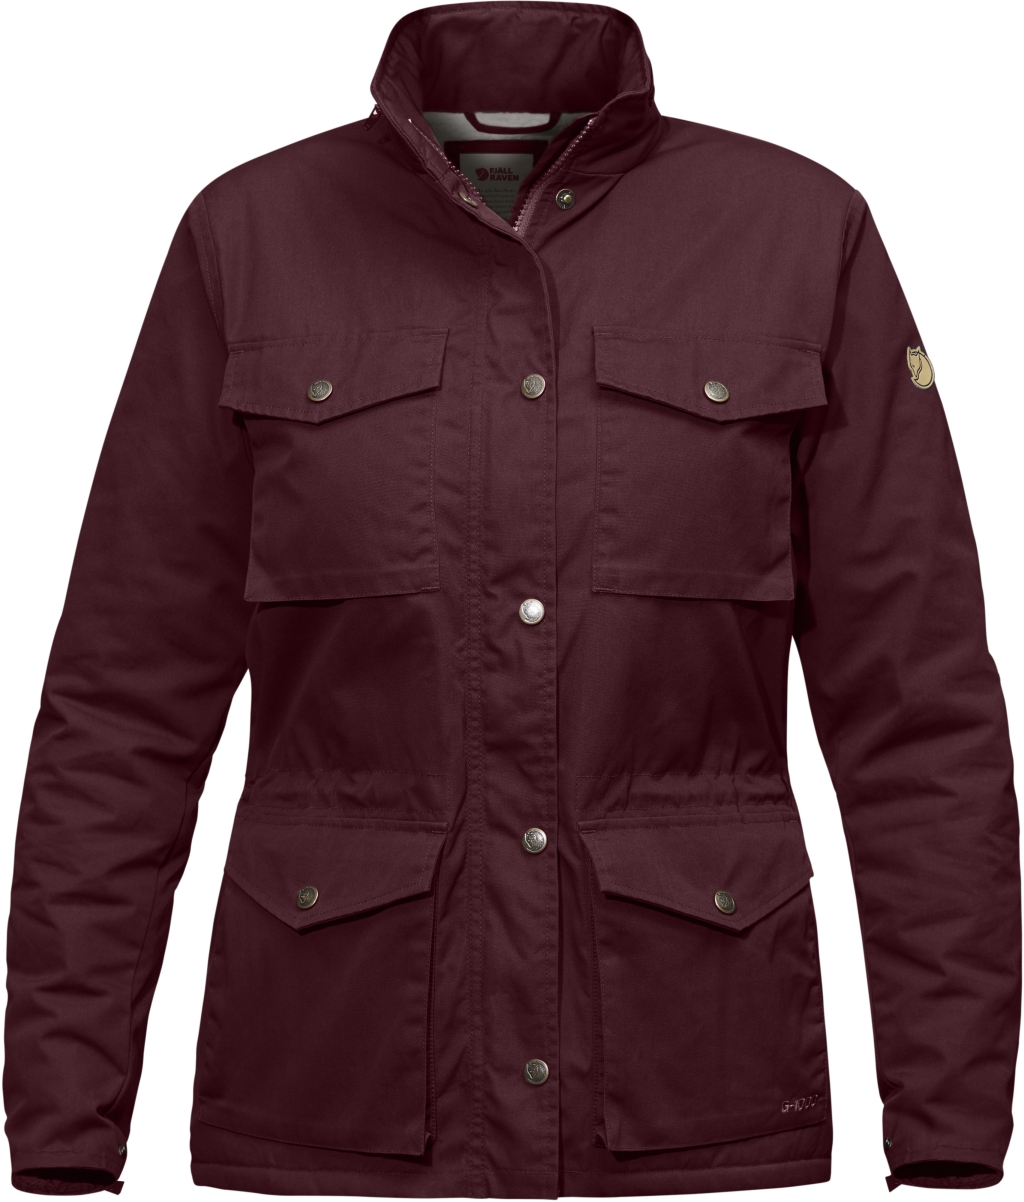 FjallRaven Raven Winter Jacket W Dark Garnet-30